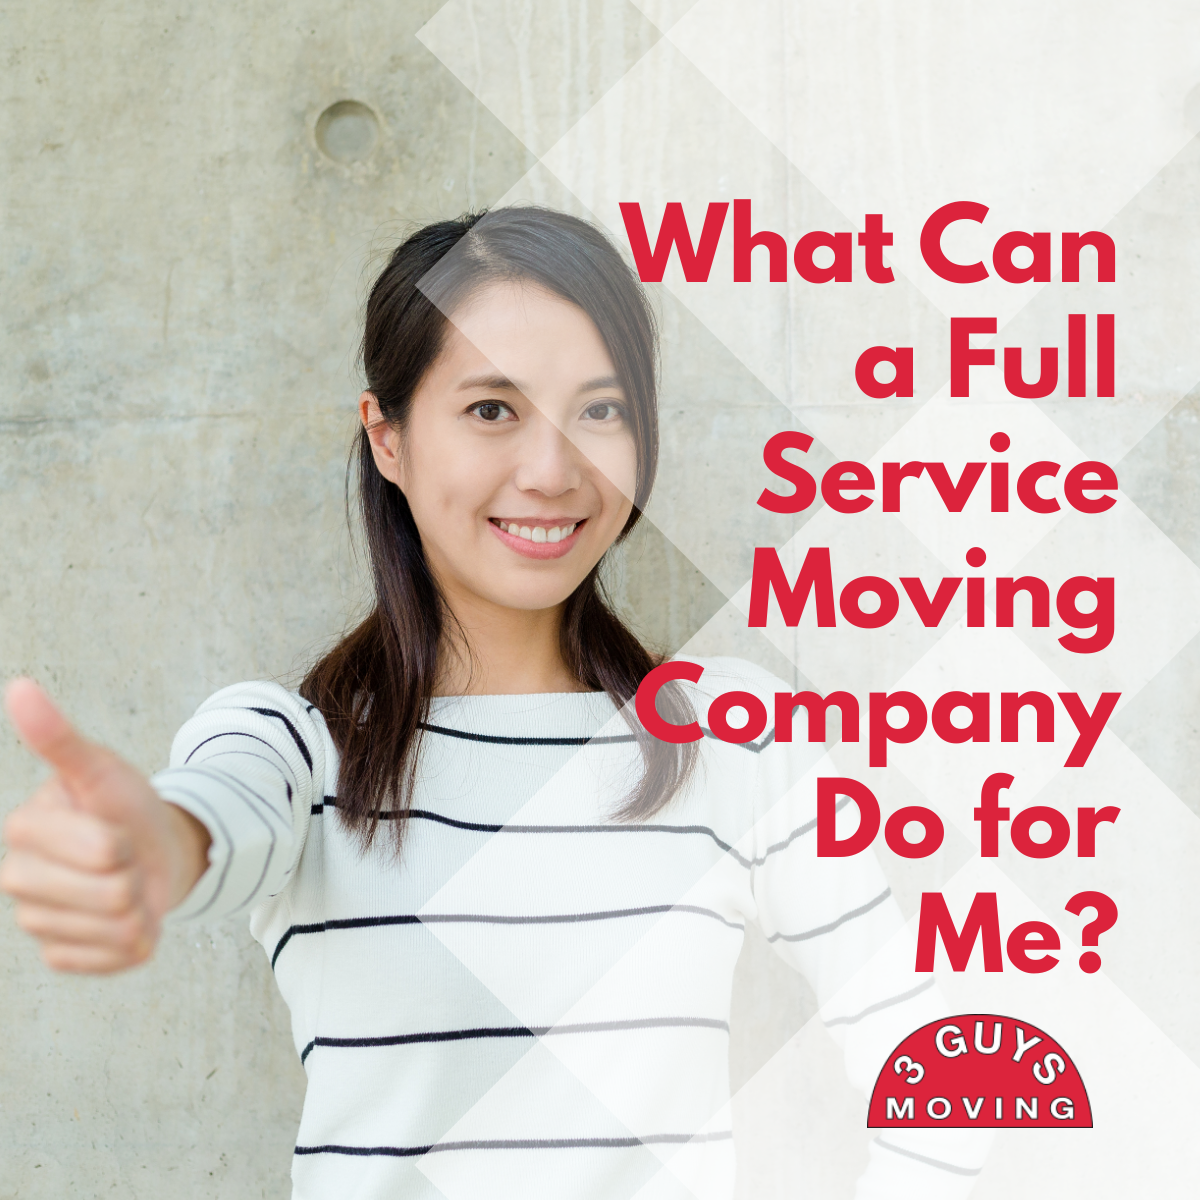 Full Service Moving Company - What Can a Full Service Moving Company Do for Me?